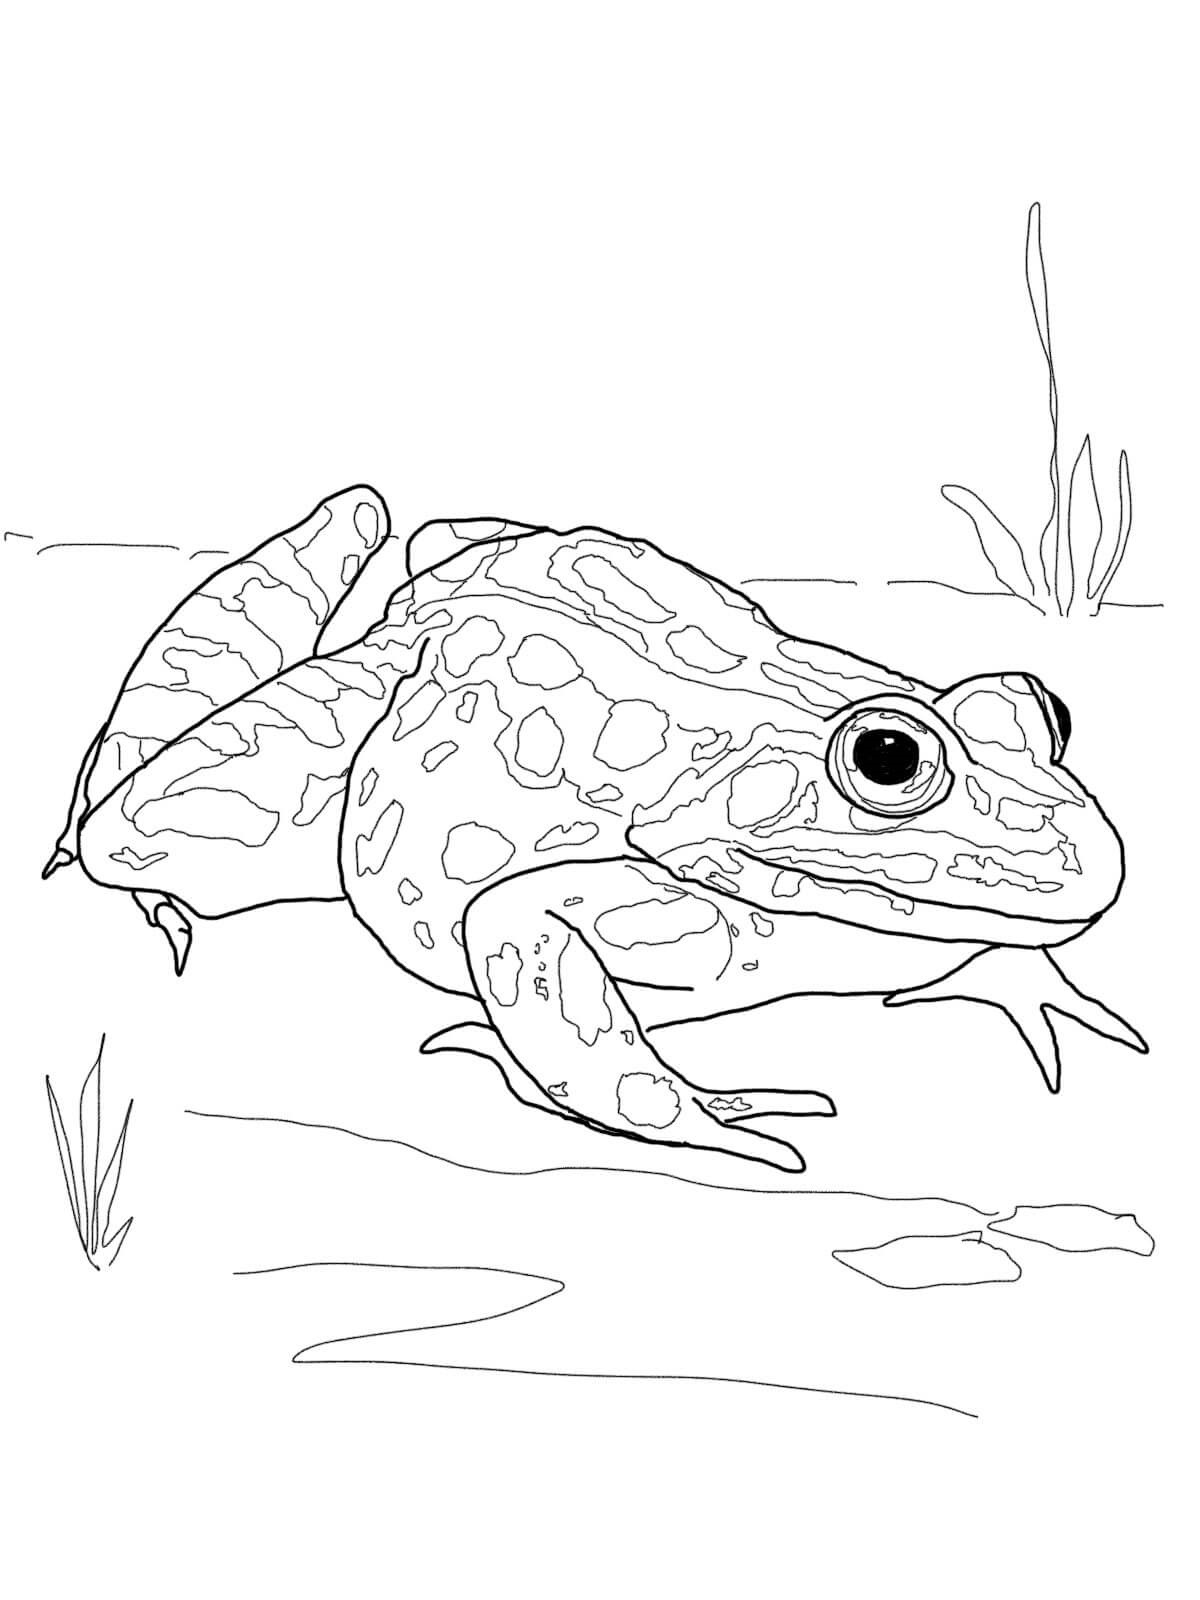 free printable frog coloring pages - printable frog coloring pages for kids learning printable